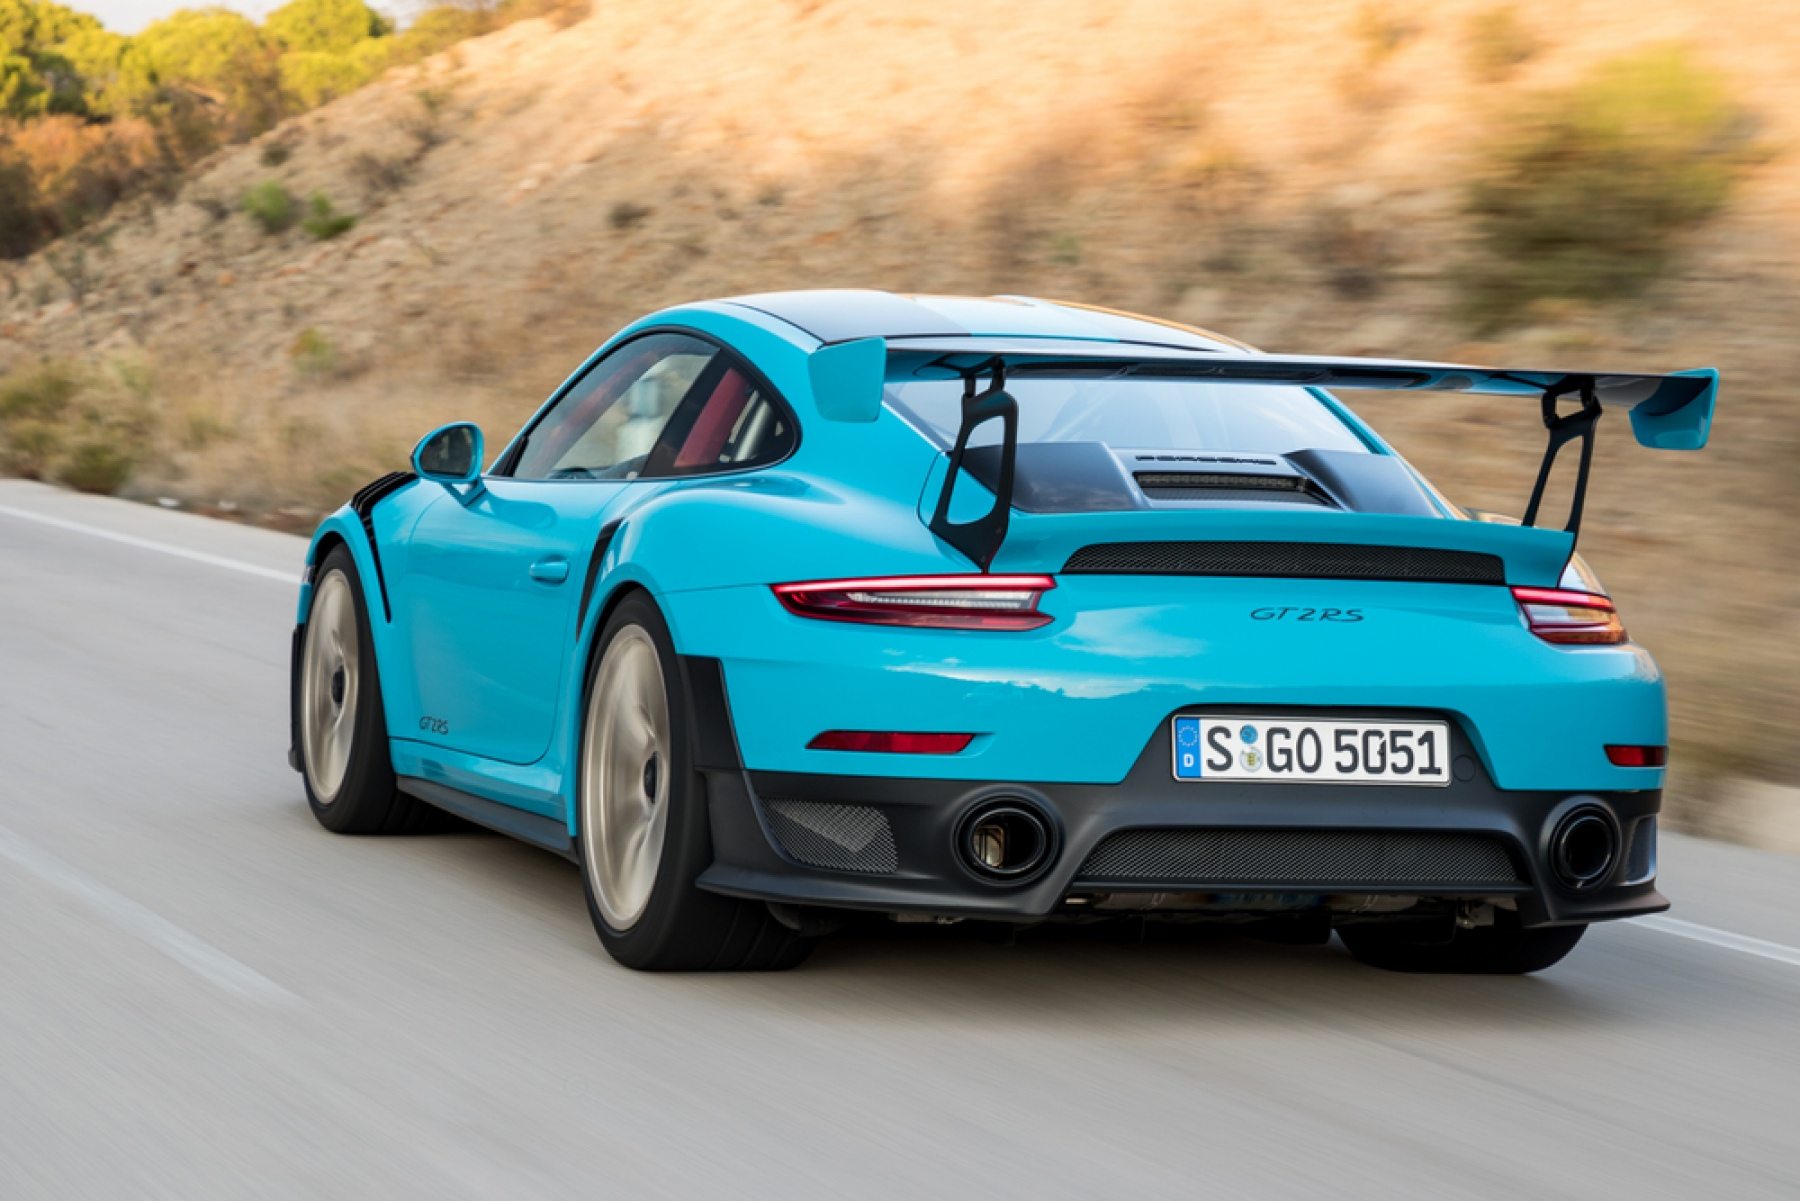 911 gt2 rs miami blue the new porsche 911 gt2 rs. Black Bedroom Furniture Sets. Home Design Ideas